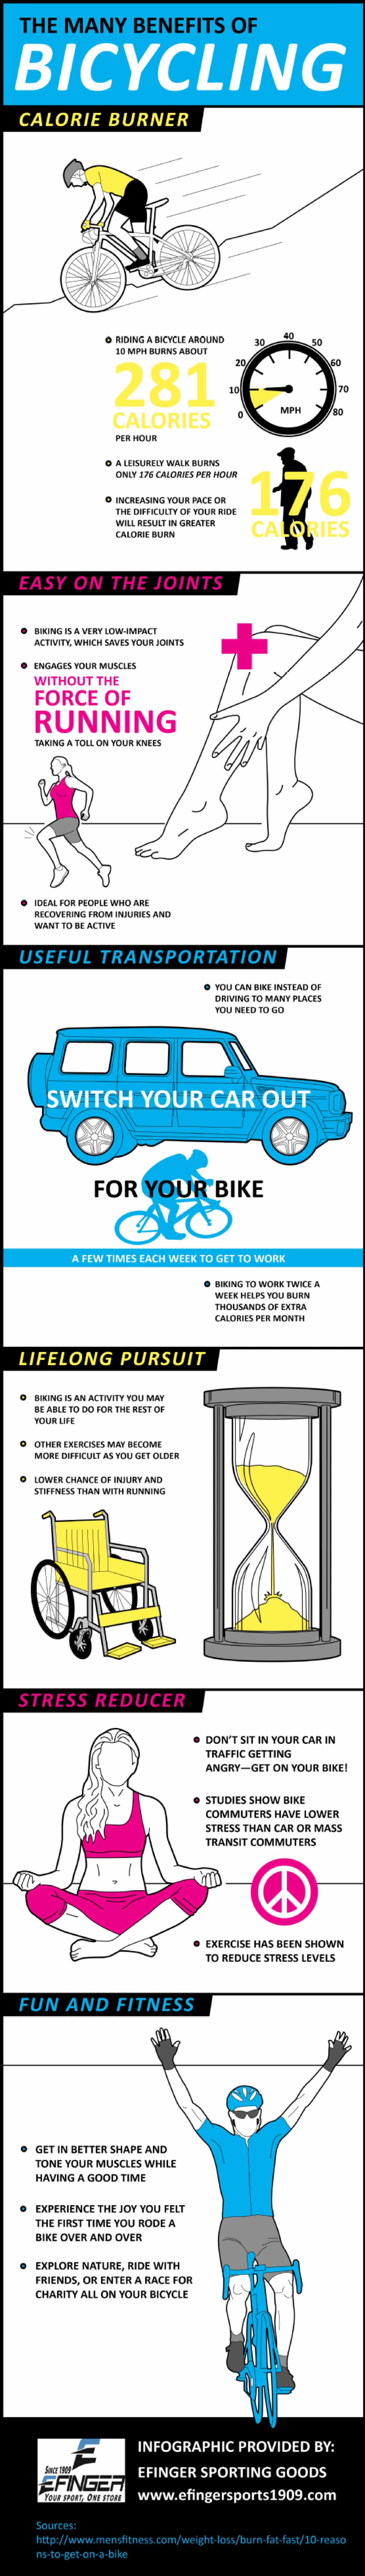 The Many Benefits of Bicycling Infographic